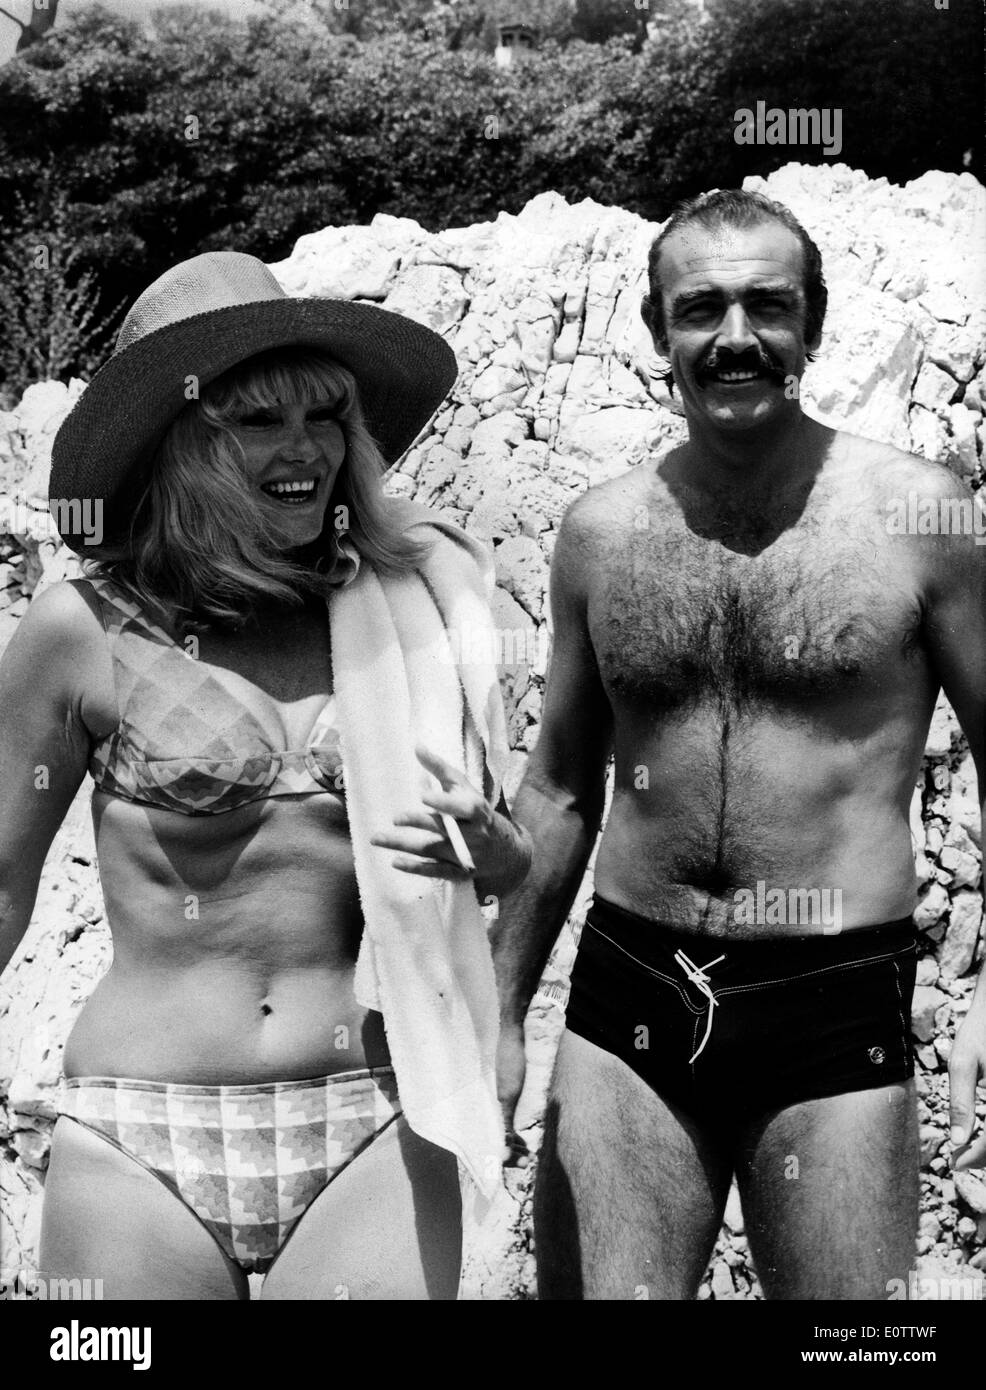 Actor Sean Connery at the beach with wife Diane Cilento - Stock Image